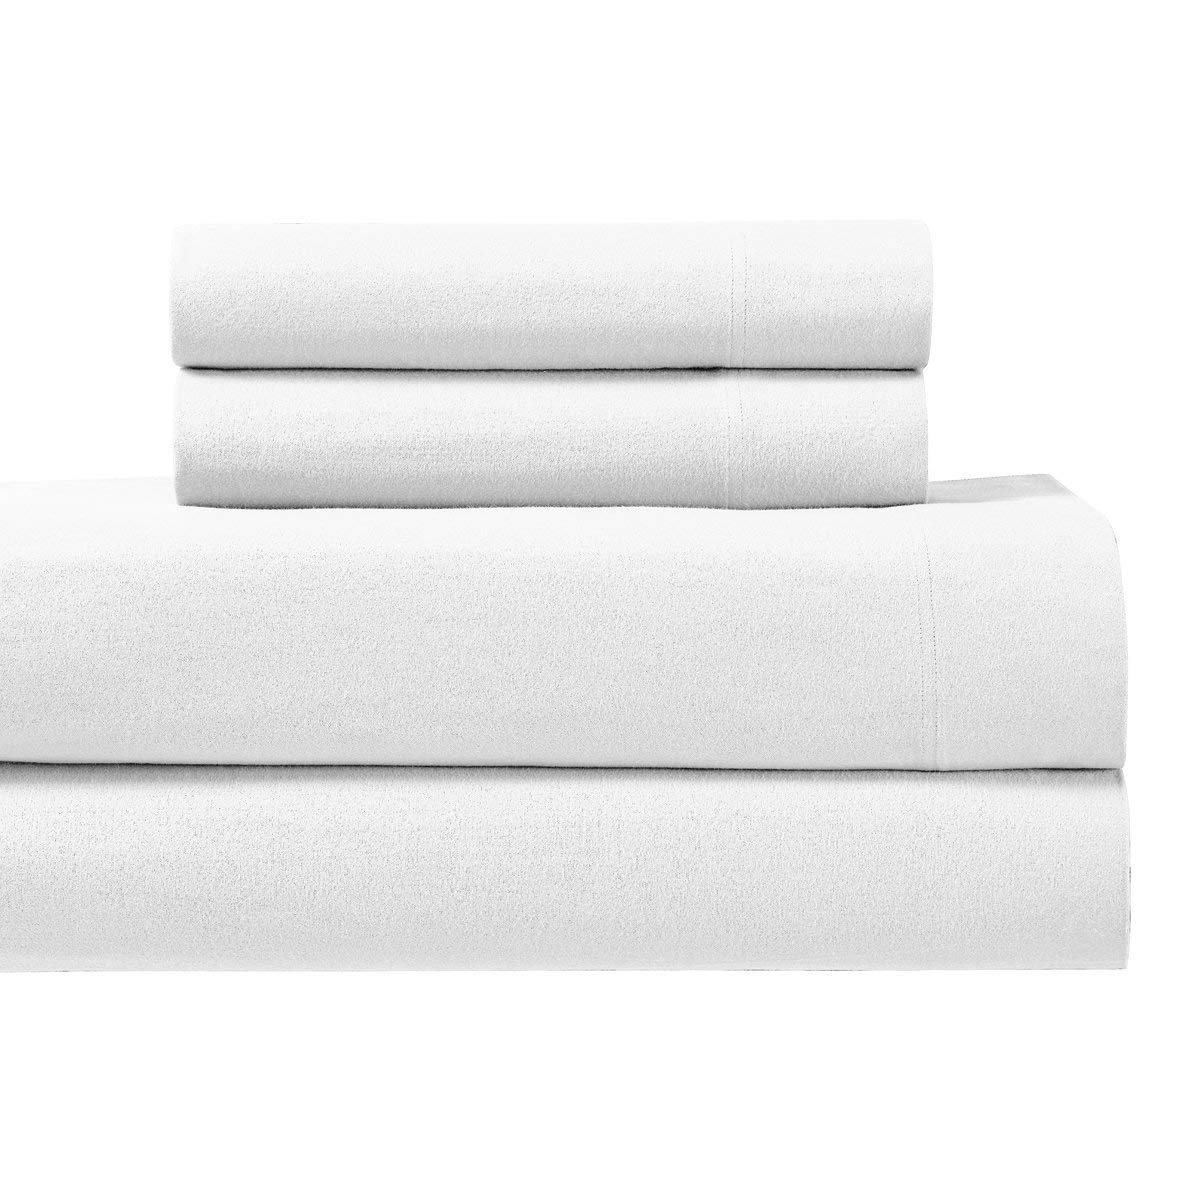 Royal's Heavy Soft 100% Cotton Flannel Sheets, 4pc Bed Sheet Set, Deep Pocket, Thick, Heavy and Ultra Soft Cotton Flannel, White, California-King Royal Hotel Bedding